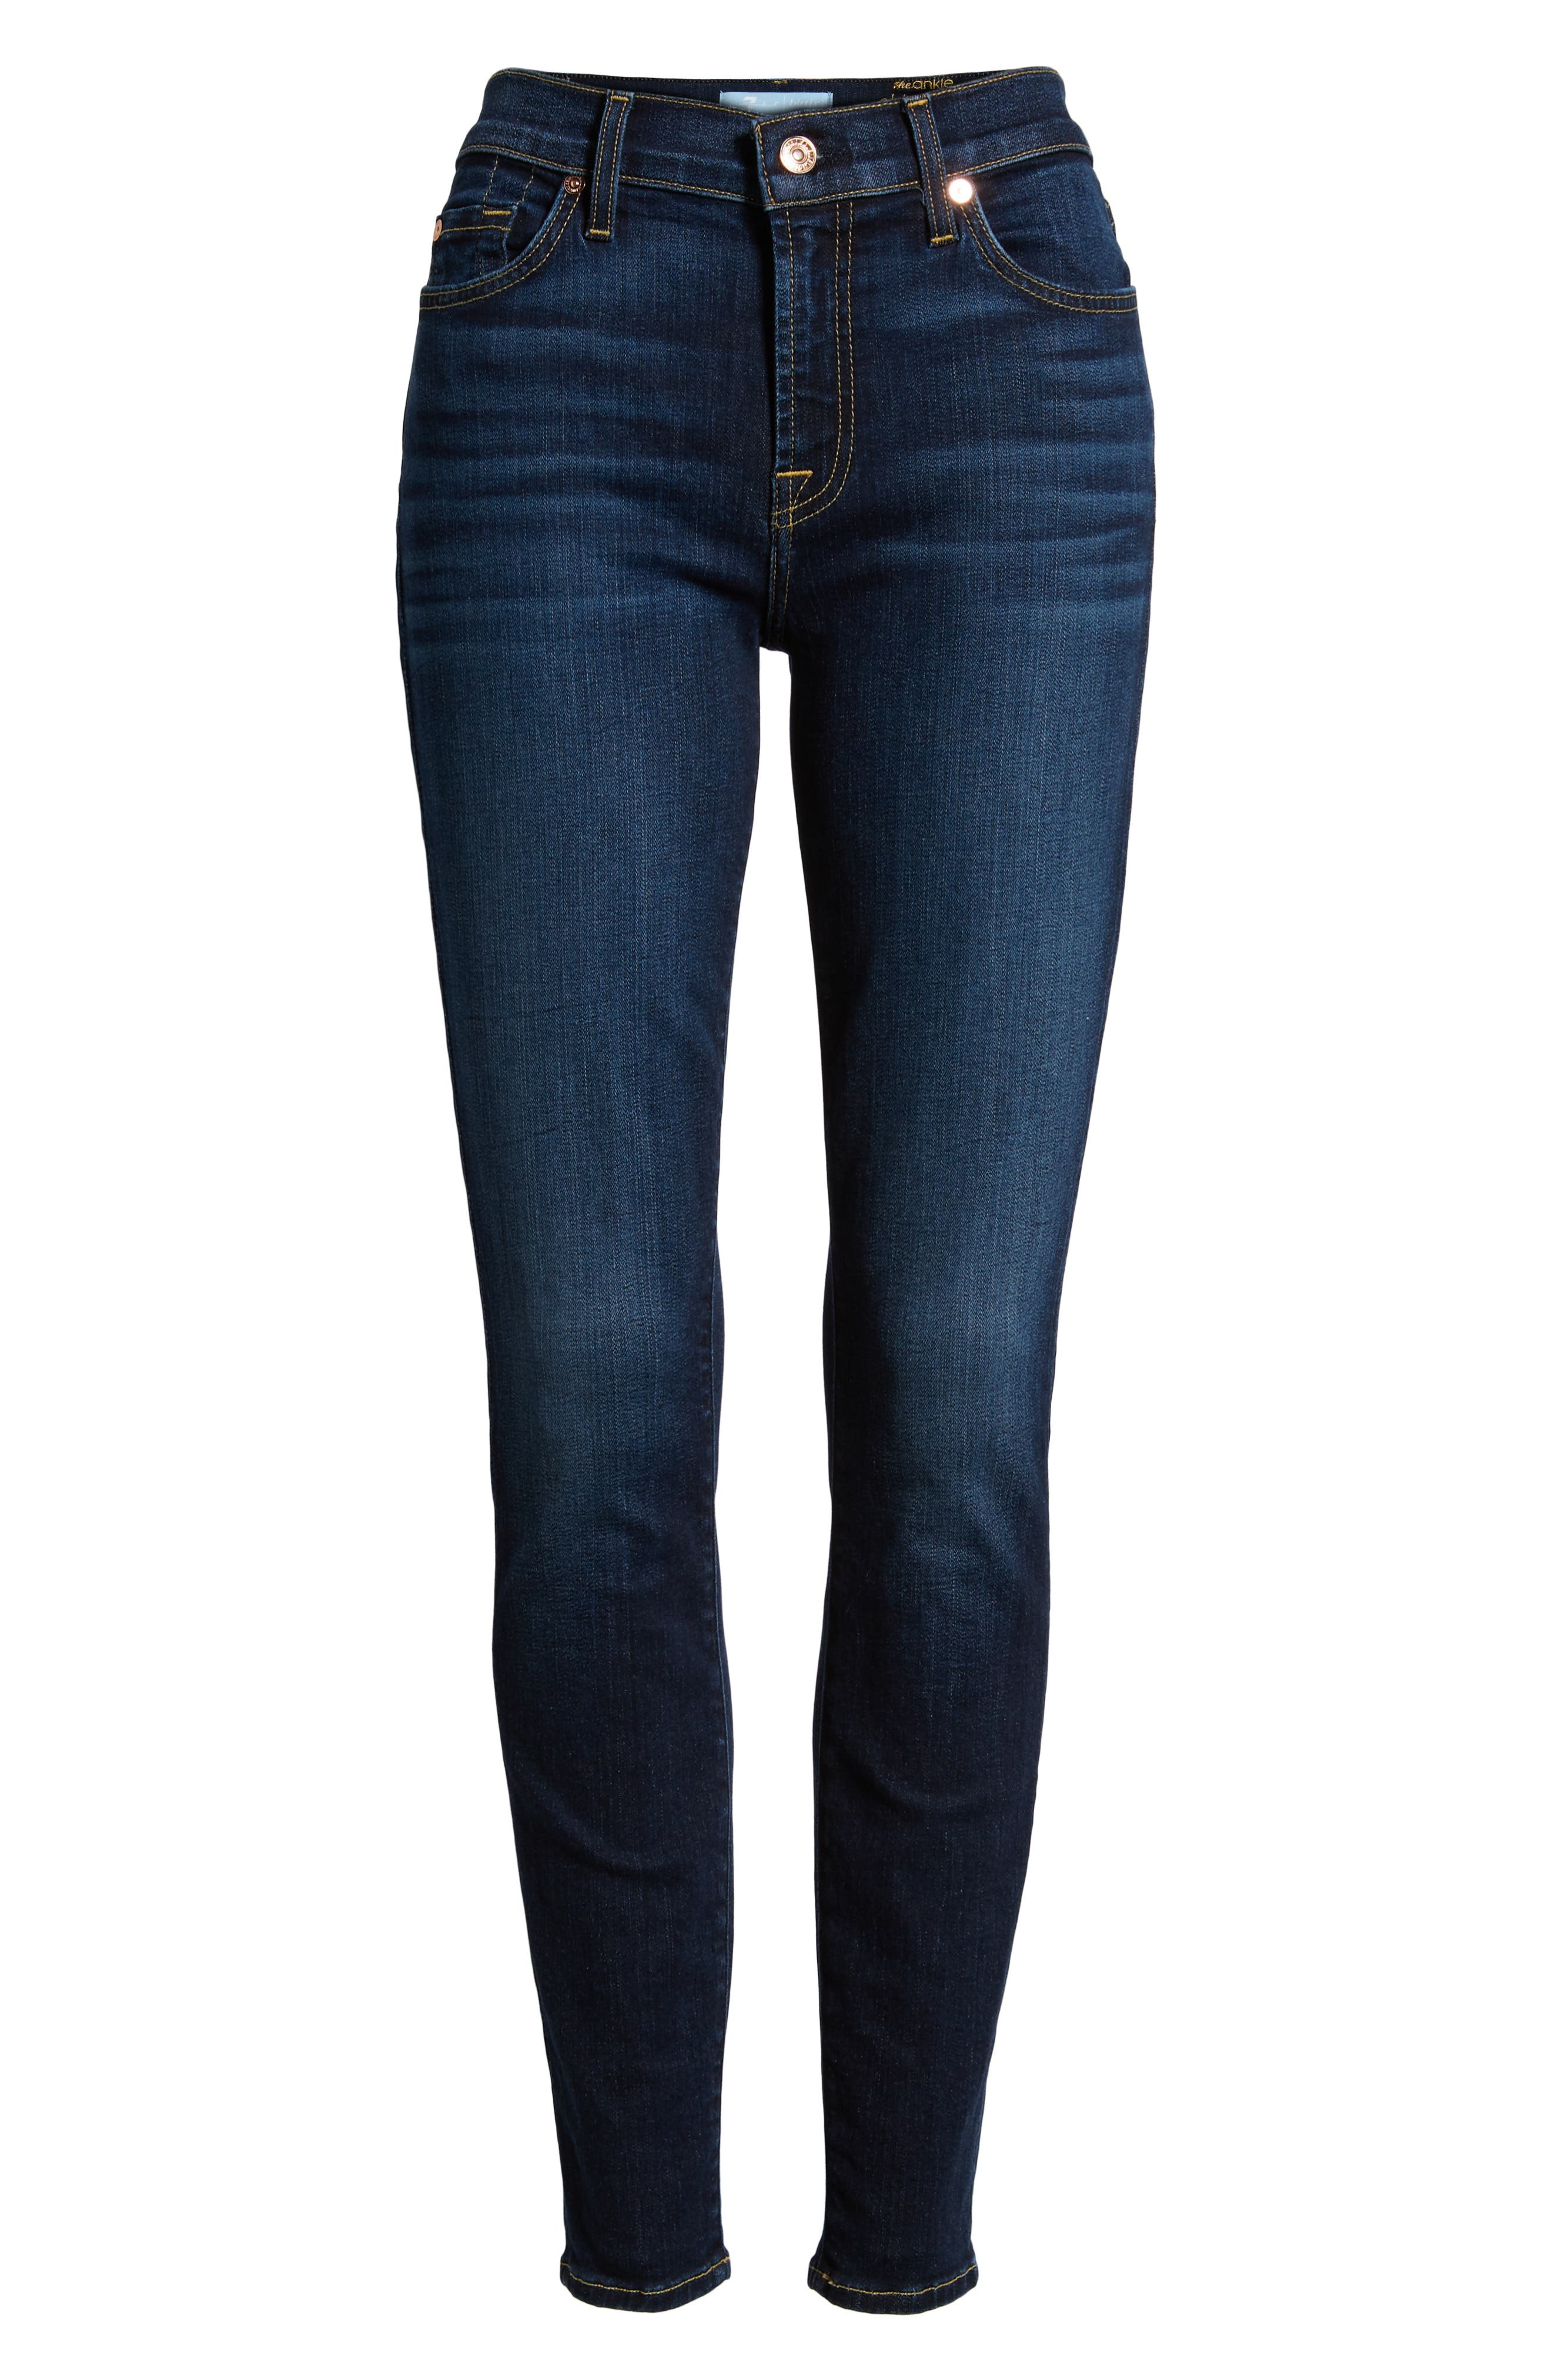 7 FOR ALL MANKIND<SUP>®</SUP>, Ankle Skinny Jeans, Alternate thumbnail 7, color, AUTHENTIC FATE